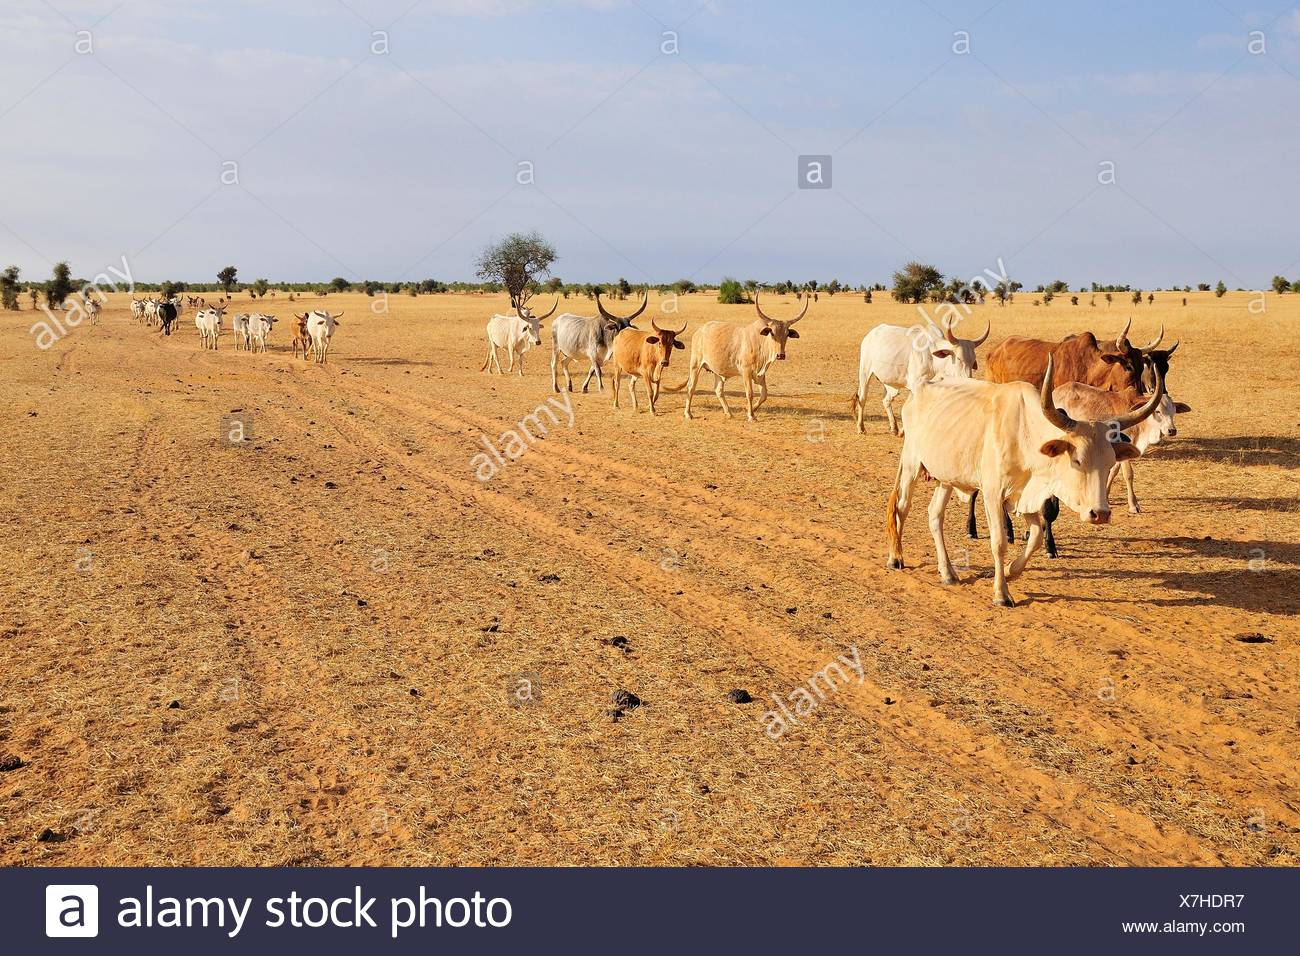 Cattle walking across the steppe, at Aleg, Brakna region, Mauritania - Stock Image